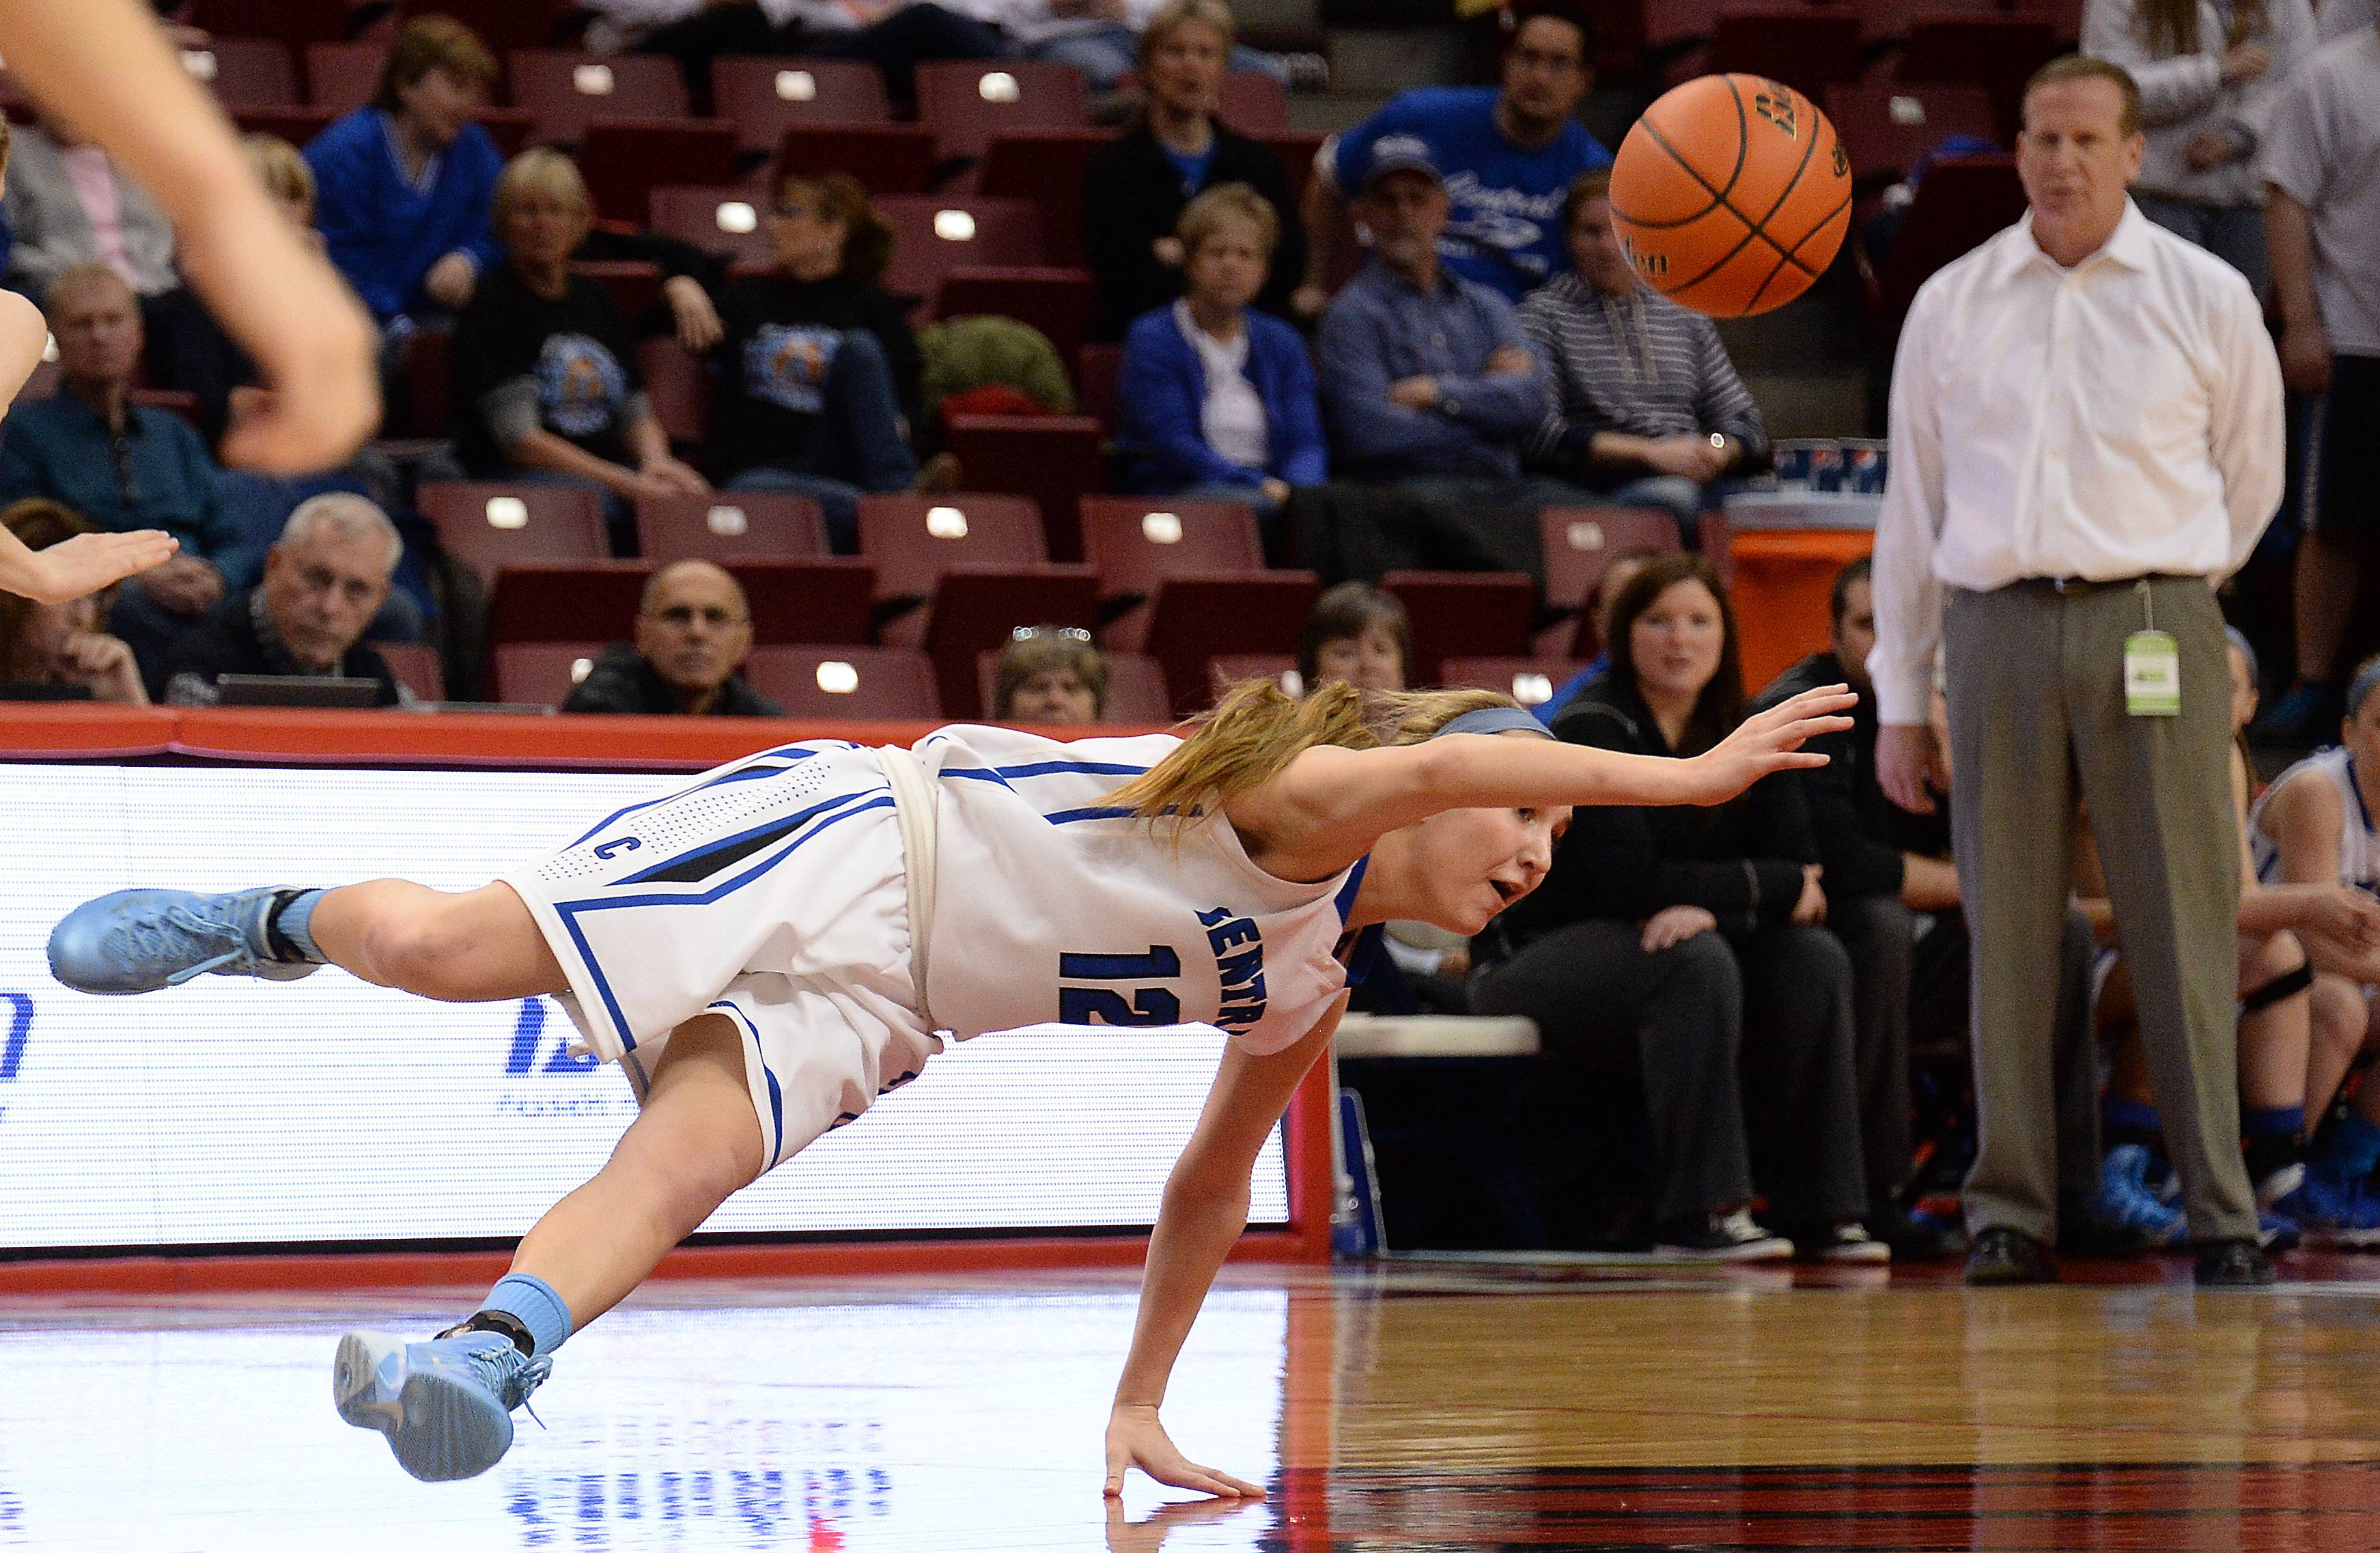 Burlington Central's Shelby Holt is tripped up as she scrambles for a loose ball in the first period of girls state basketball in the third place game in Normal on Saturday.